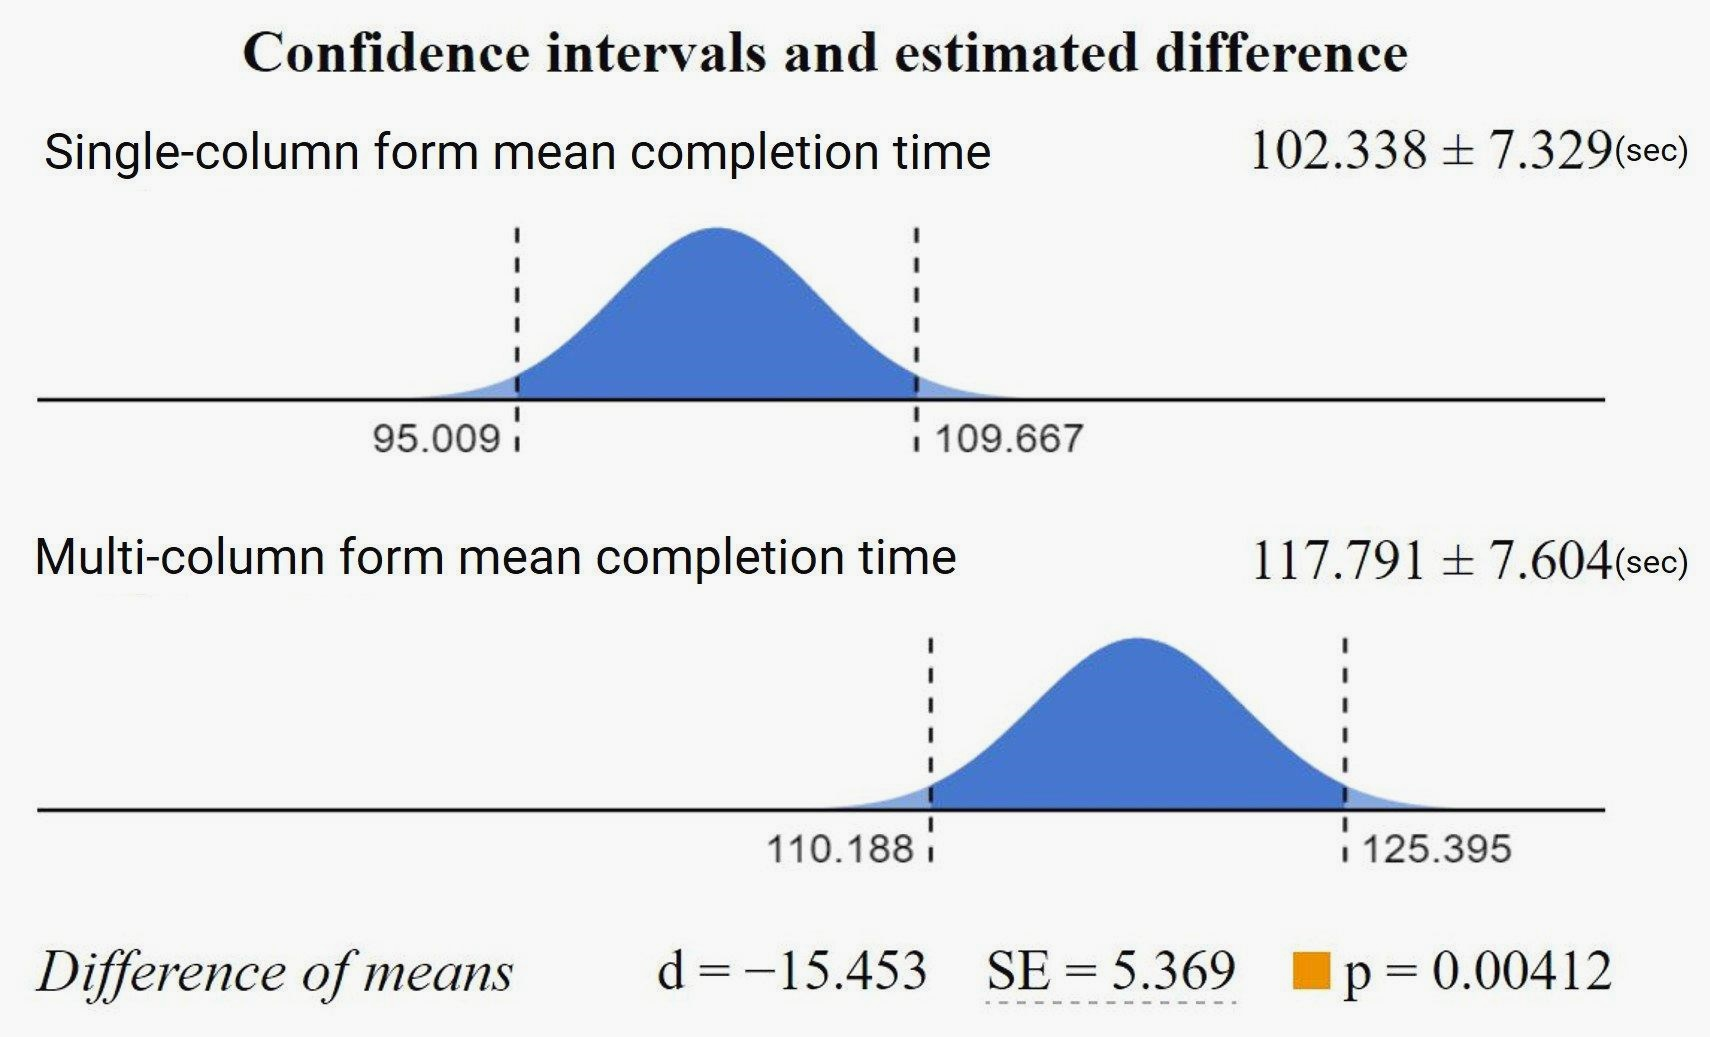 graphic with confidence intervals and estimated differences between using a single column or multiple column form